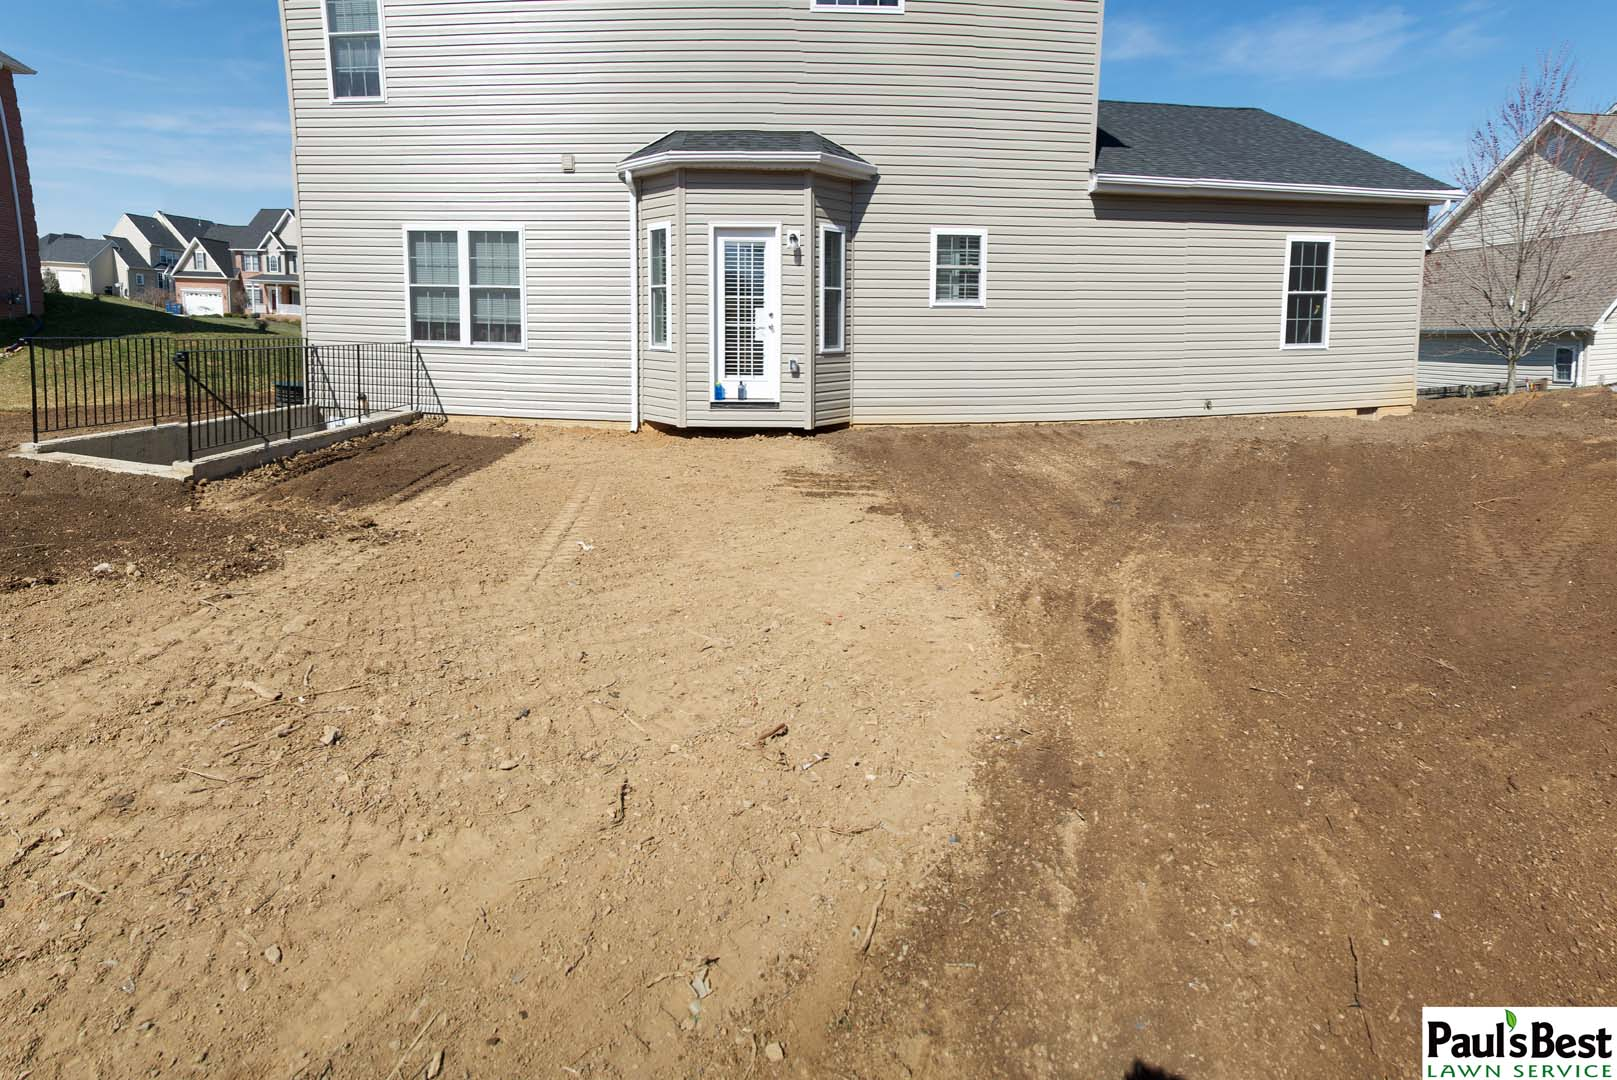 https://paulsbestlawn.com/pbls-img/portfolio/lawn-mowing-lawn-fertilization-and-treatment/before-and-after/web-ready/large/BALM1-d-New-Construction-After-Turf-Care-Vienna-VA.jpg